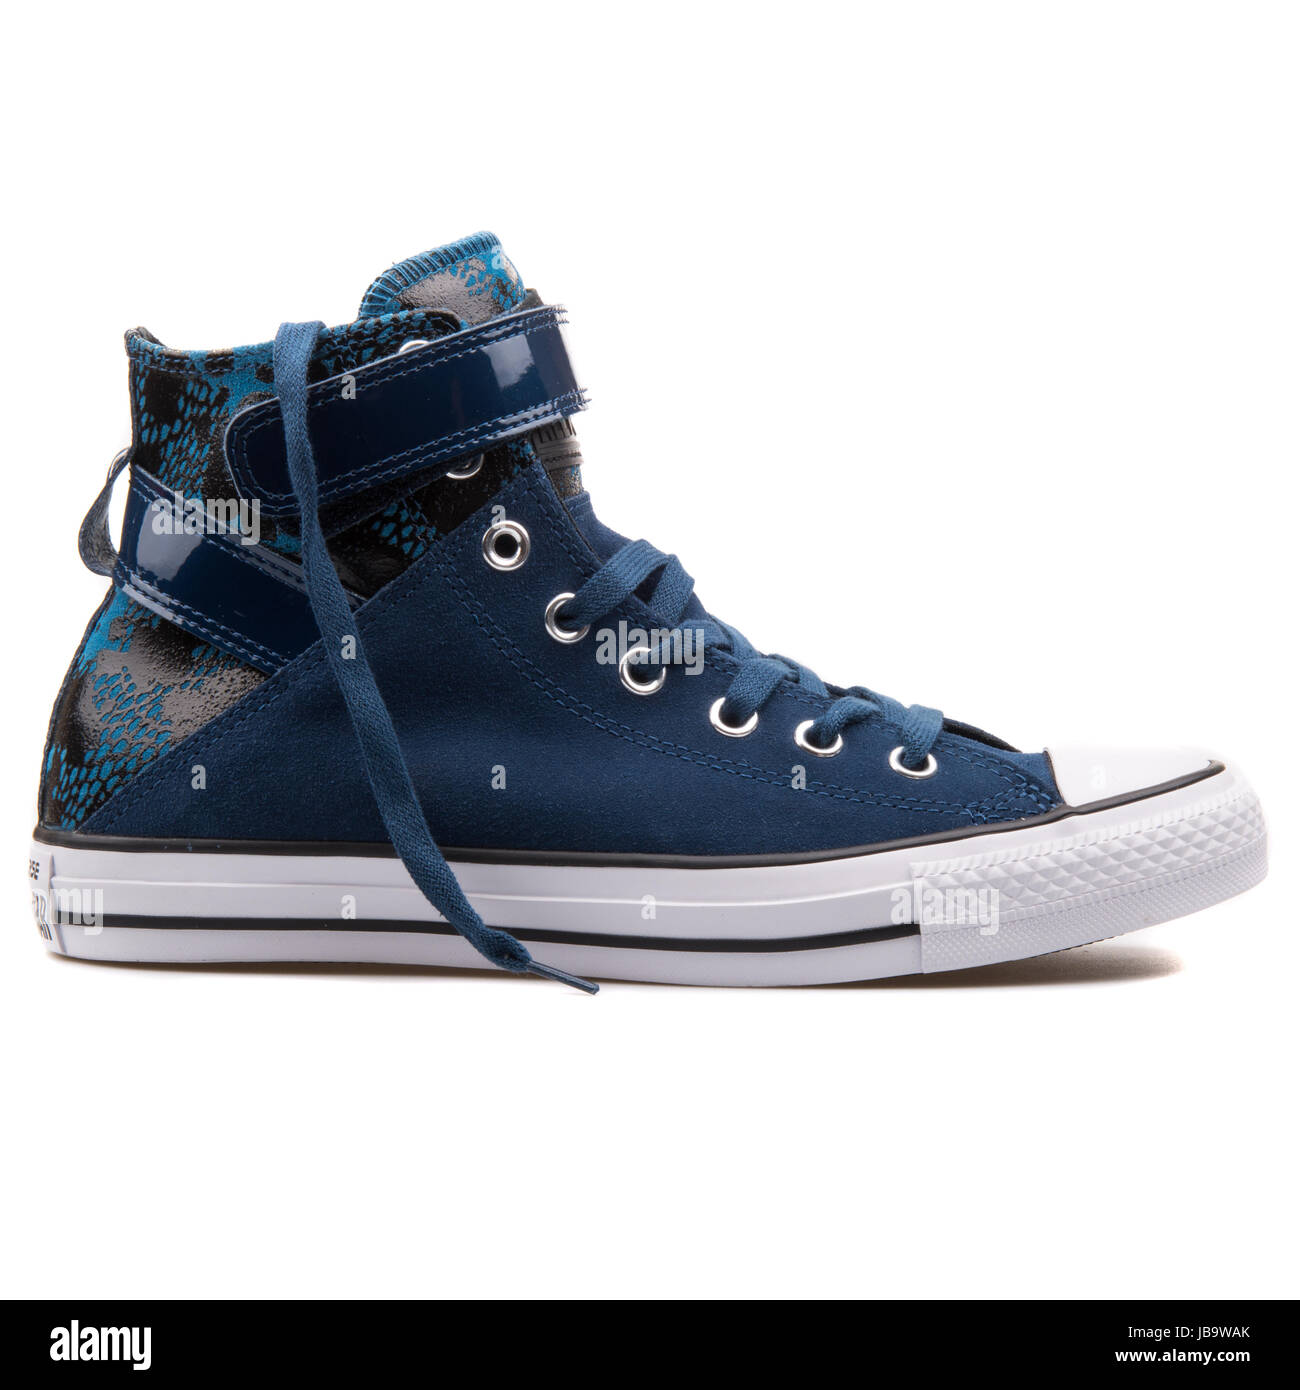 c1bf53912a5e Converse Chuck Taylor All Star Brea Hi Night Nighttime NA Blue Women s  Shoes - 549580C